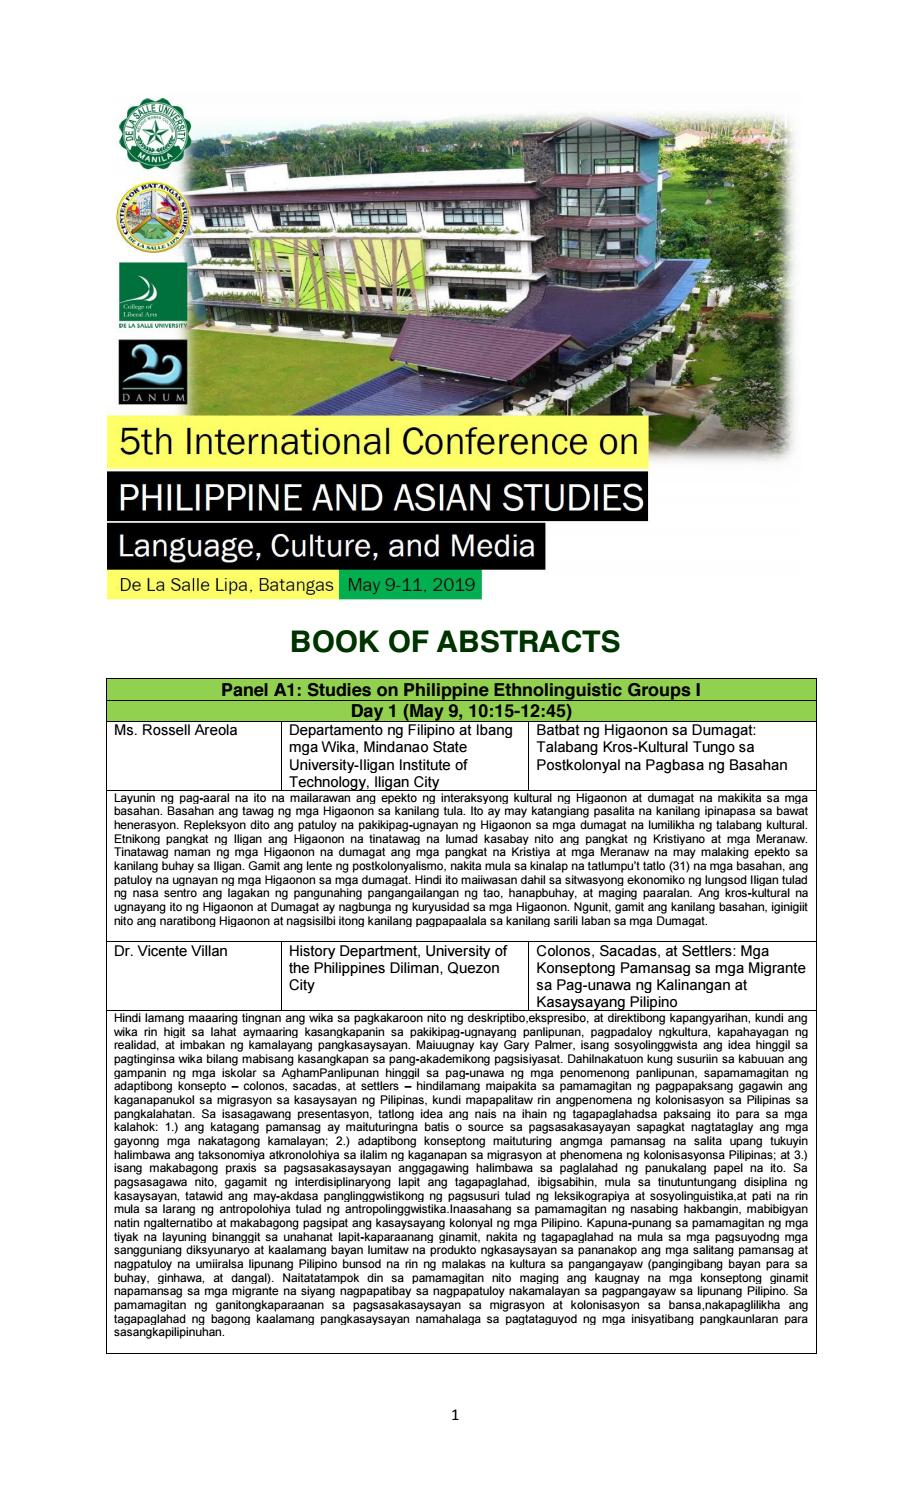 danum book of abstracts by Jean Makisig - issuu